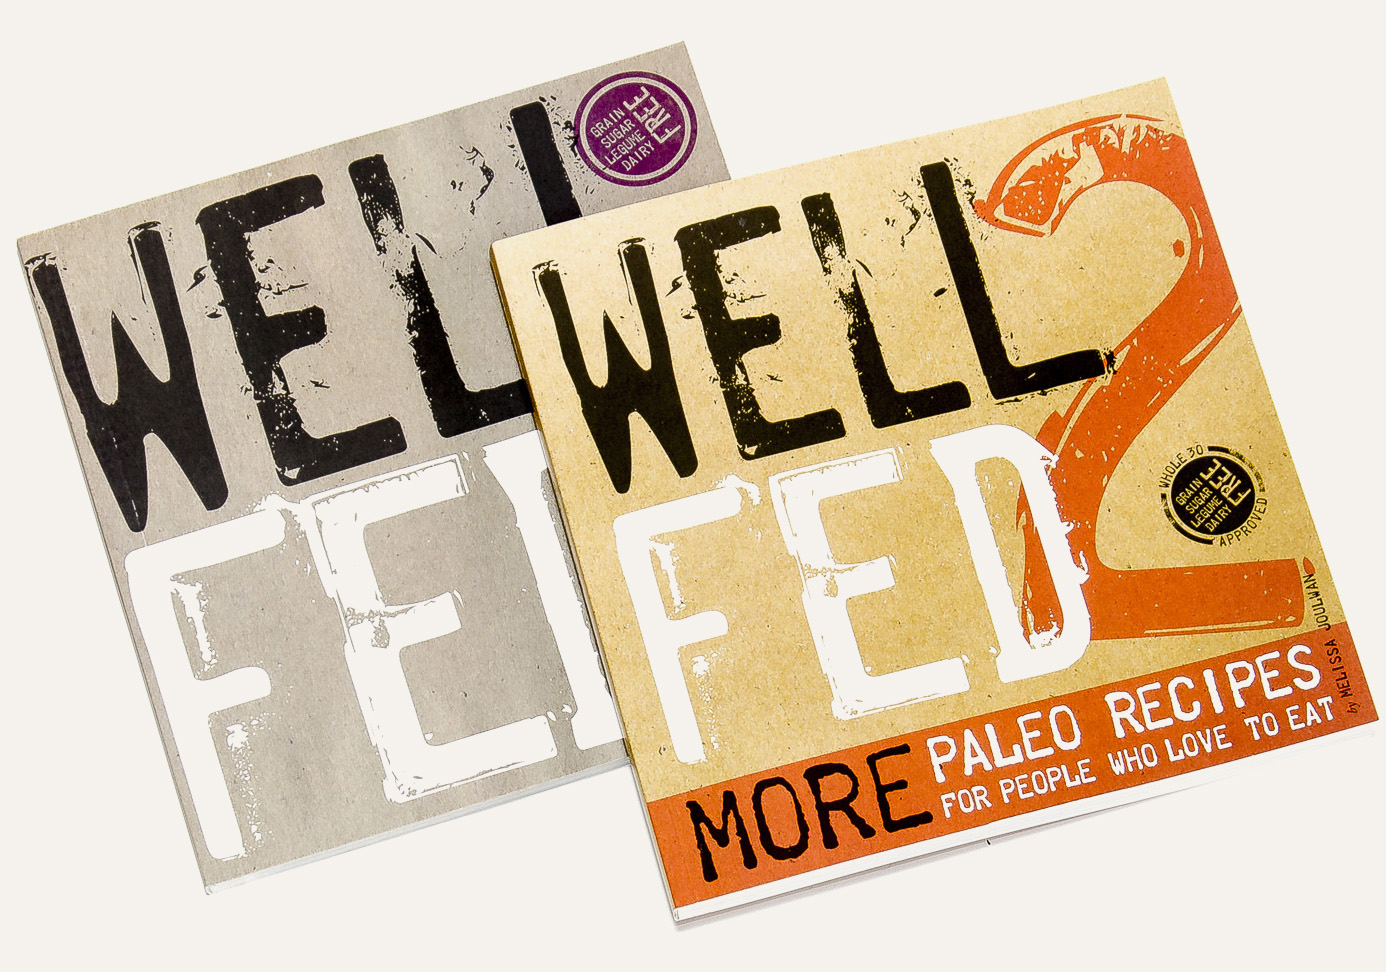 wellfed_wellfed2